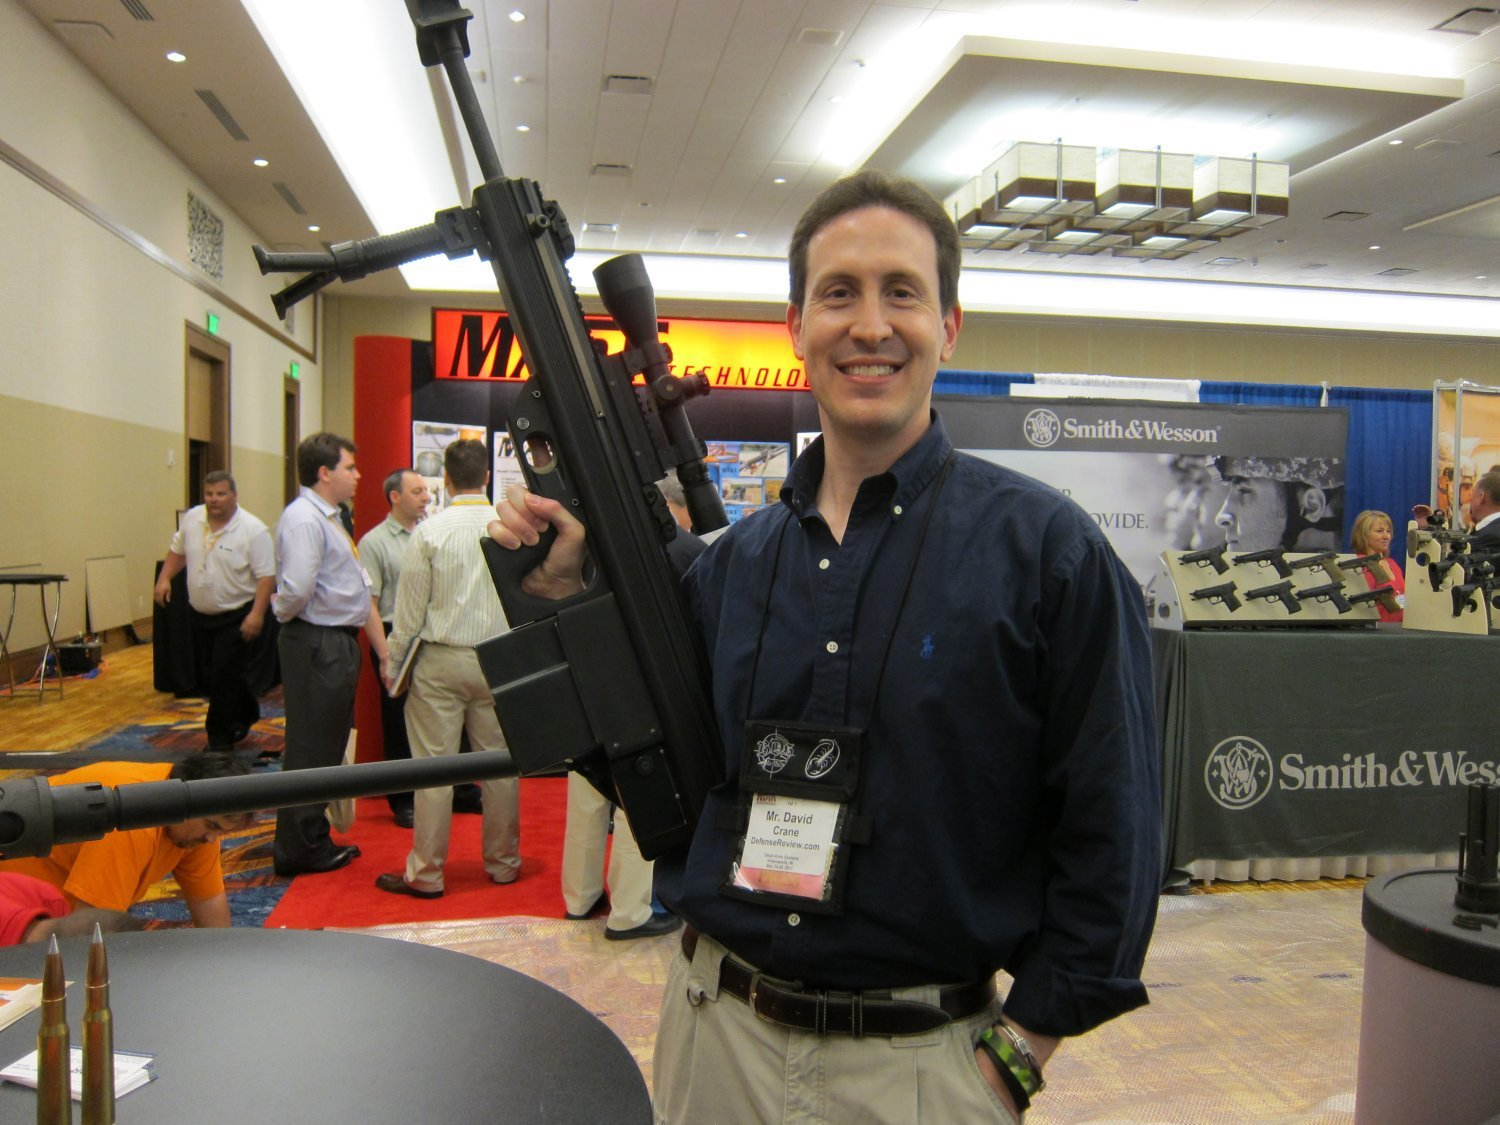 David Crane of DefenseReview.com Holding Micor Leader 50 Lightweight Bullpup Semi Auto .50 BMG Sniper Anti Materiel Rifle NDIA Small Arms Symposium 2011 1 <!  :en  >MICOR Defense Leader 50 Ultra Compact, Lightweight Bullpup Semi Auto .50 BMG (12.7x99mm NATO) Sniper/Anti Materiel Rifle and PNW Arms Weapons Science .50BMG Ammo at NDIA Infantry Small Arms Systems Symposium 2011: Potential Long Range Lethality Game Changer Combo for 21st Century Infantry Warfare (Photos and Video!)<!  :  >